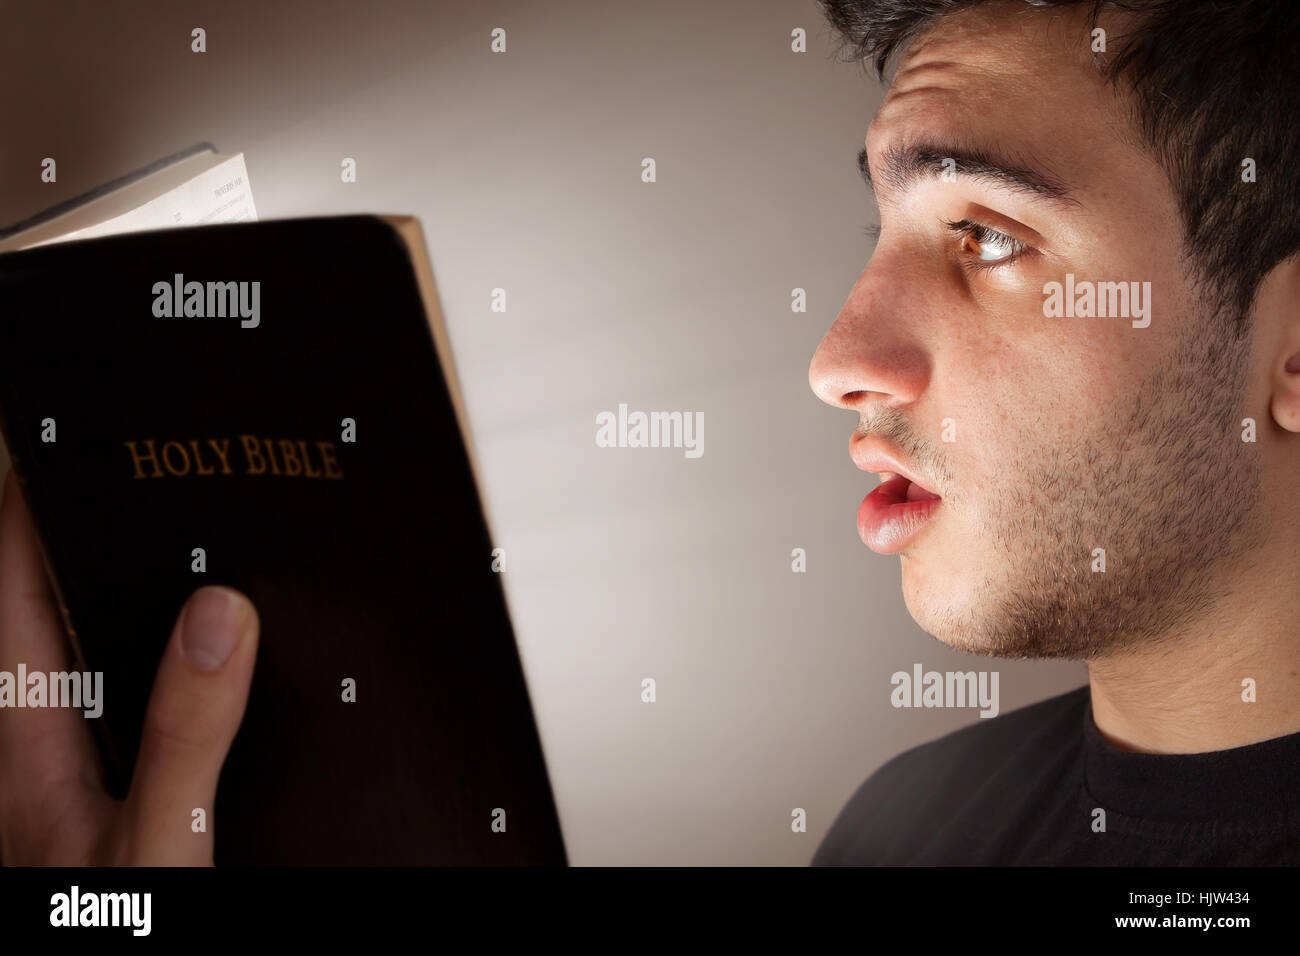 Young man astonished and intrigued by open Bible - Stock Image